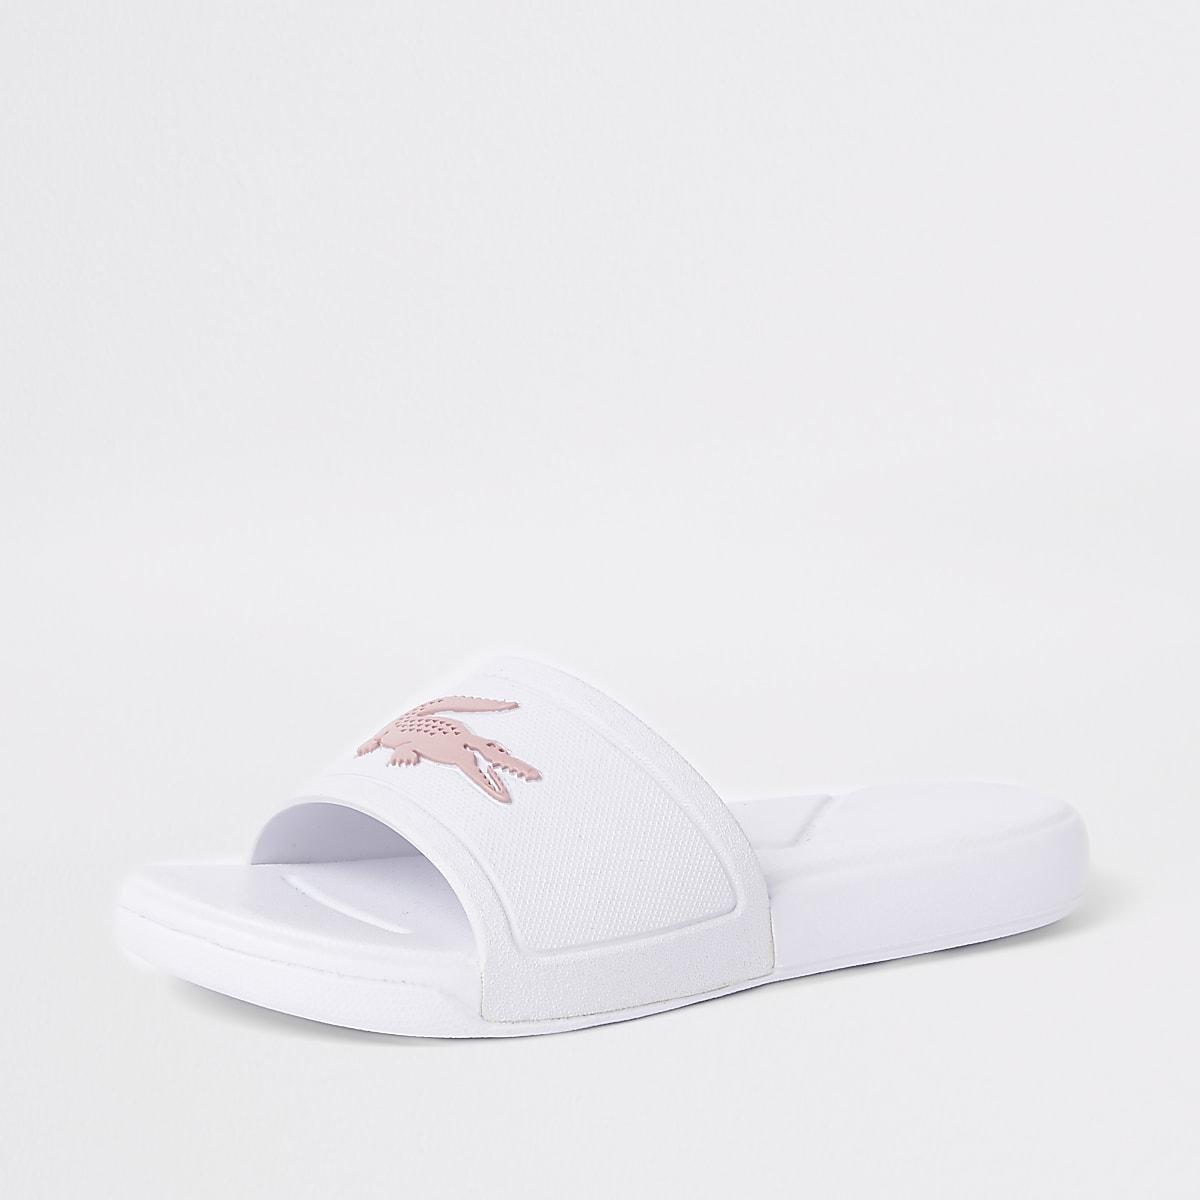 f8d5e6c0780b Girls Lacoste white embossed sliders - Sandals - Footwear - girls